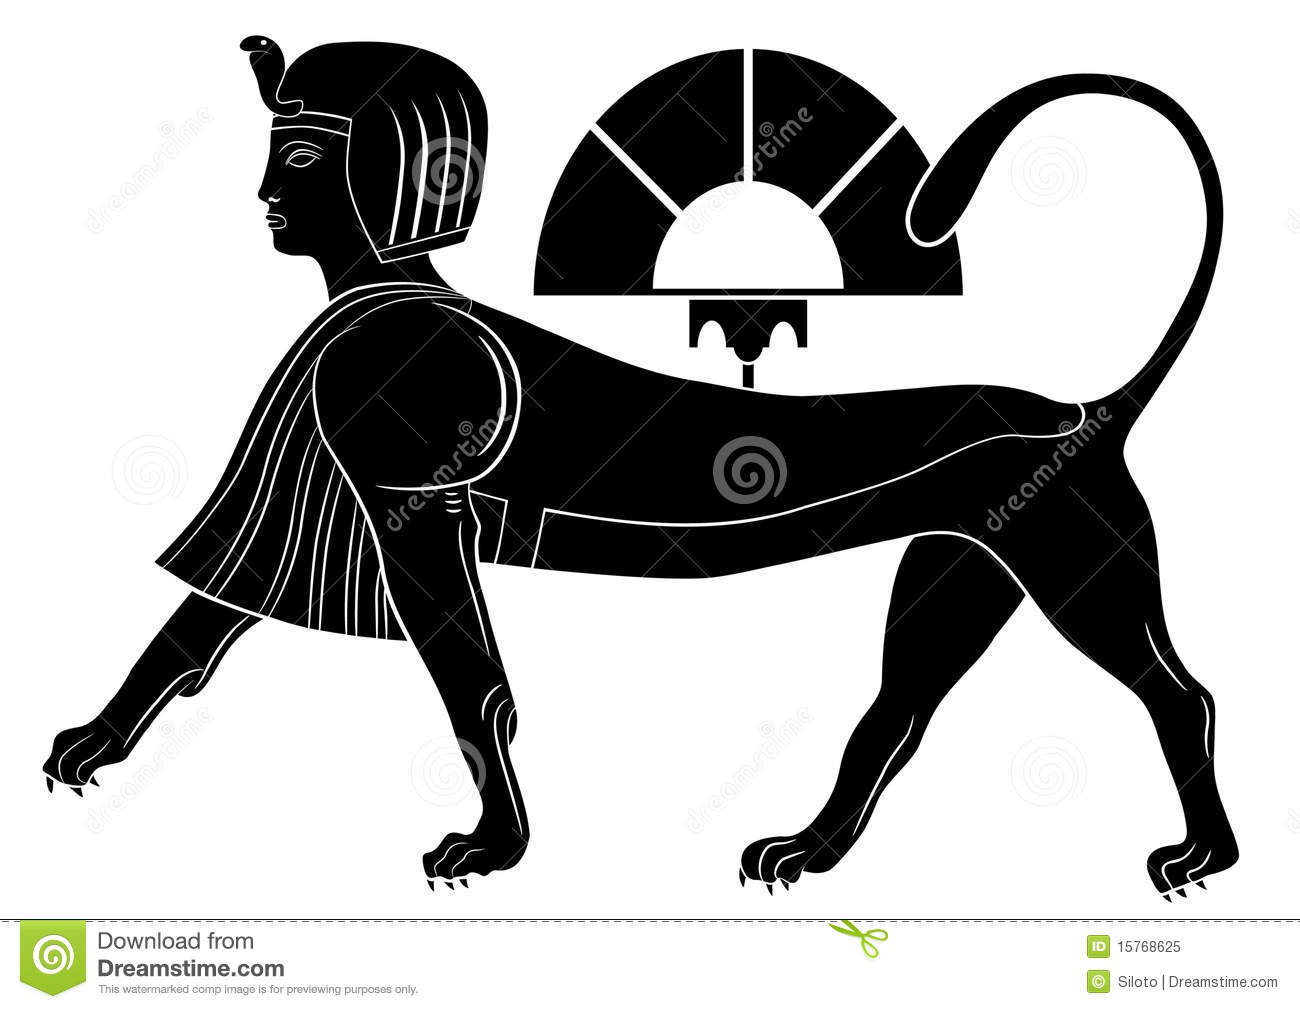 Sphinx - Mythical Creatures Stock Vector - Illustration of africa